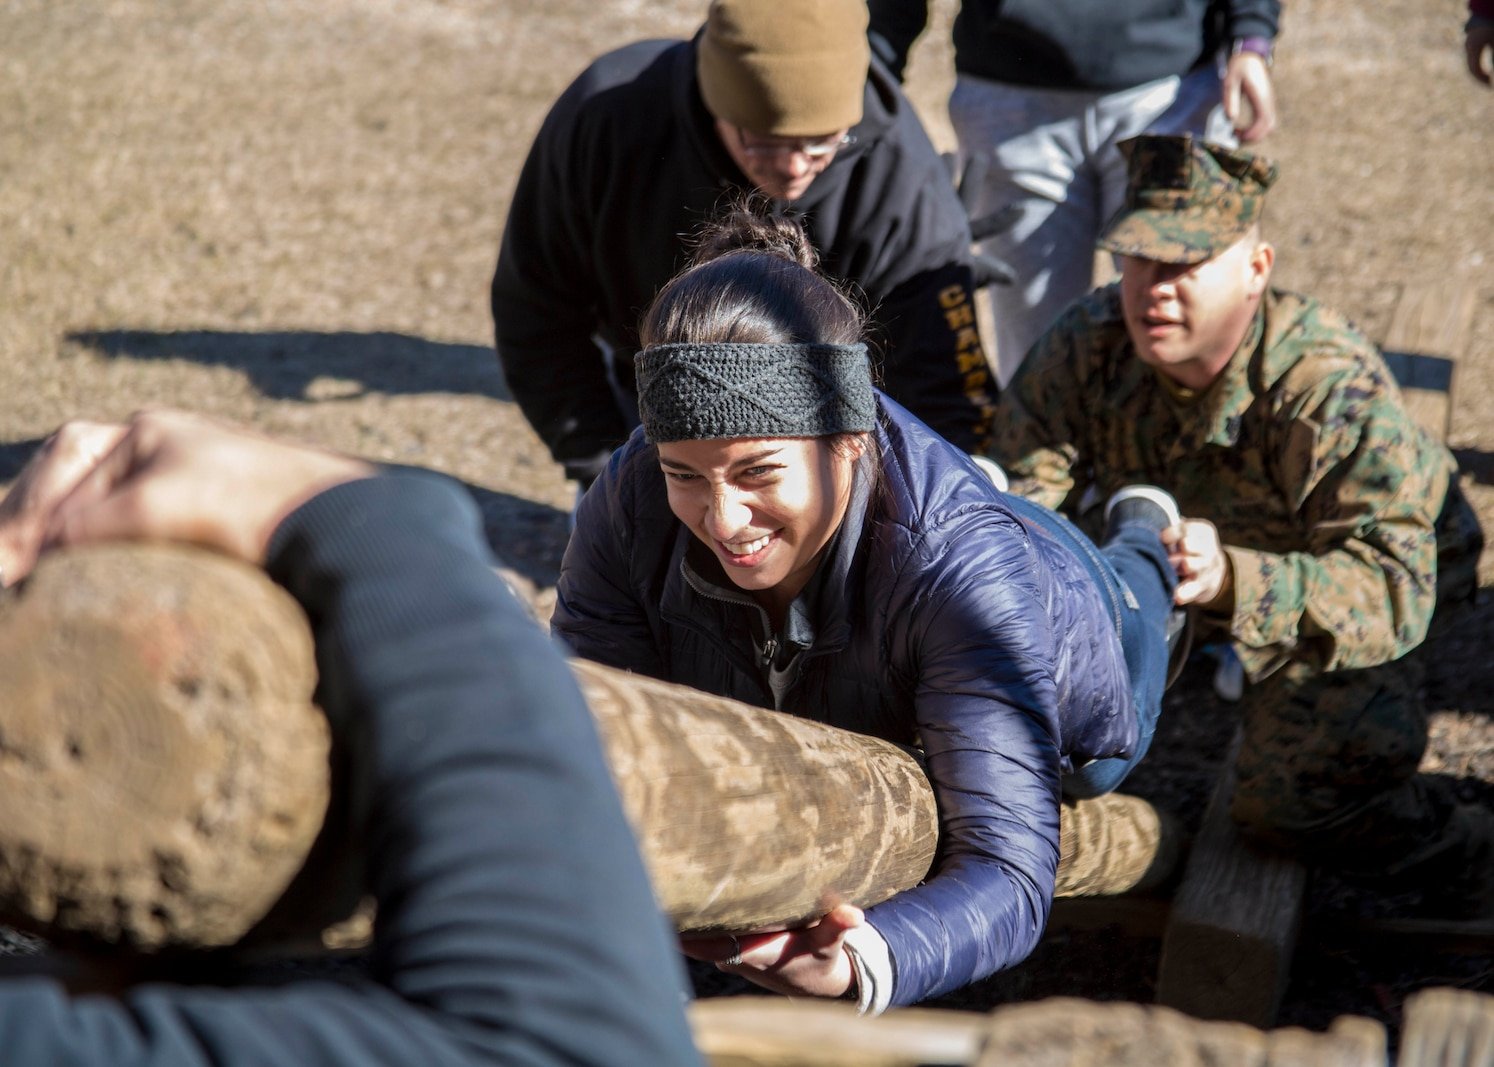 Samantha Mercurio, a teacher from Springstead High School, participates in the Leadership Reaction Course during the Educators Workshop aboard Marine Corps Recruit Depot Parris Island, South Carolina, Jan. 18, 2017.  These educators traveled from Recruiting Station (RS) Fort Lauderdale and RS Tampa to experience the Educators Workshop. The workshop allows educators to have an inside look at educational benefits and career opportunities in the Marine Corps to better inform their students. (U.S. Marine Corps photo by Lance Cpl. Jack A. E. Rigsby)